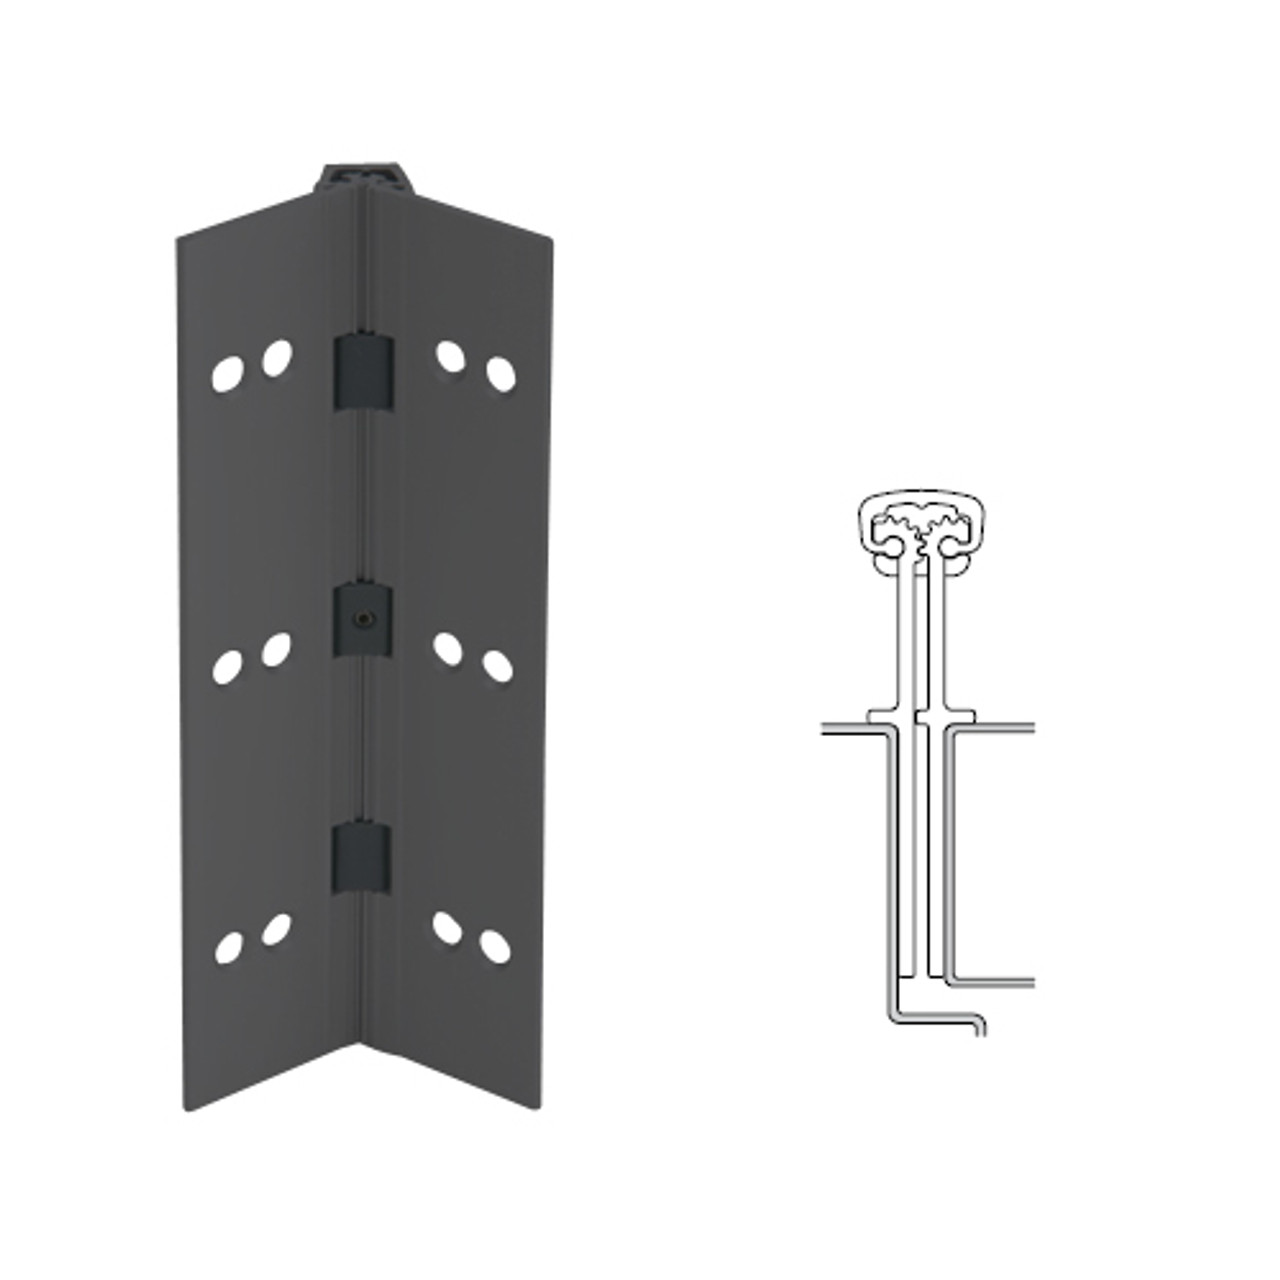 040XY-315AN-83-TFWD IVES Full Mortise Continuous Geared Hinges with Thread Forming Screws in Anodized Black